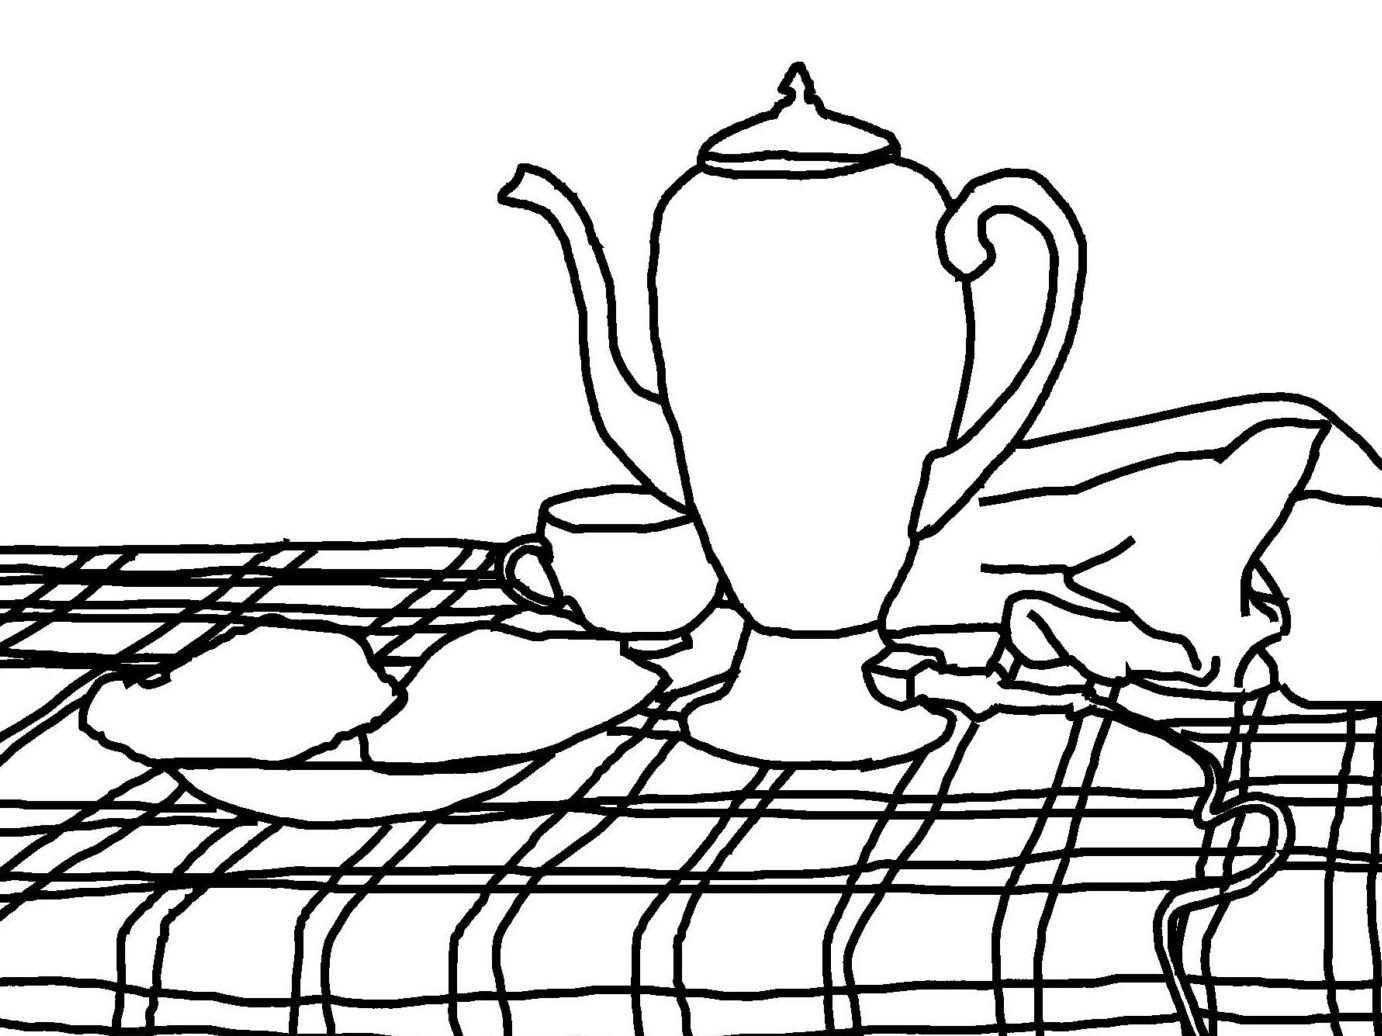 PAAM Coloring Book Page